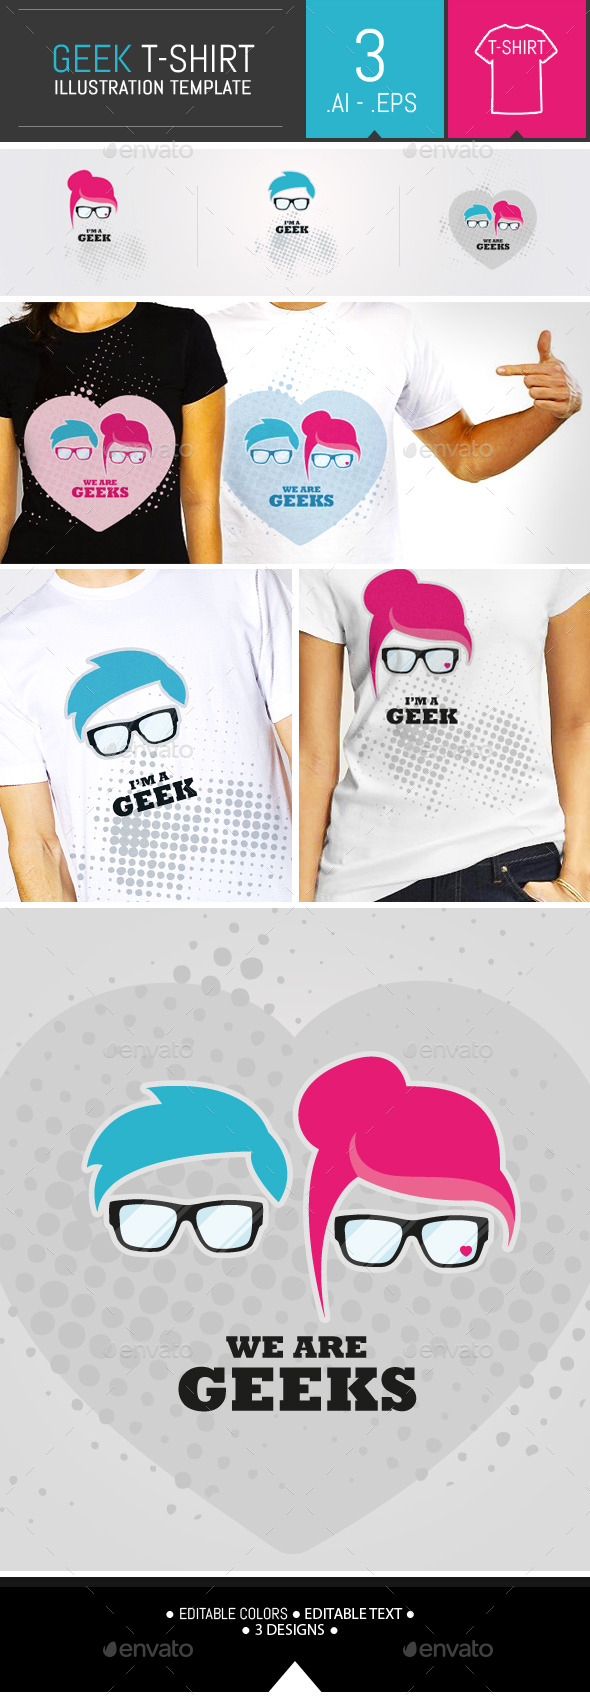 GraphicRiver Geek Vector Illustration T-shirt Template 9957504